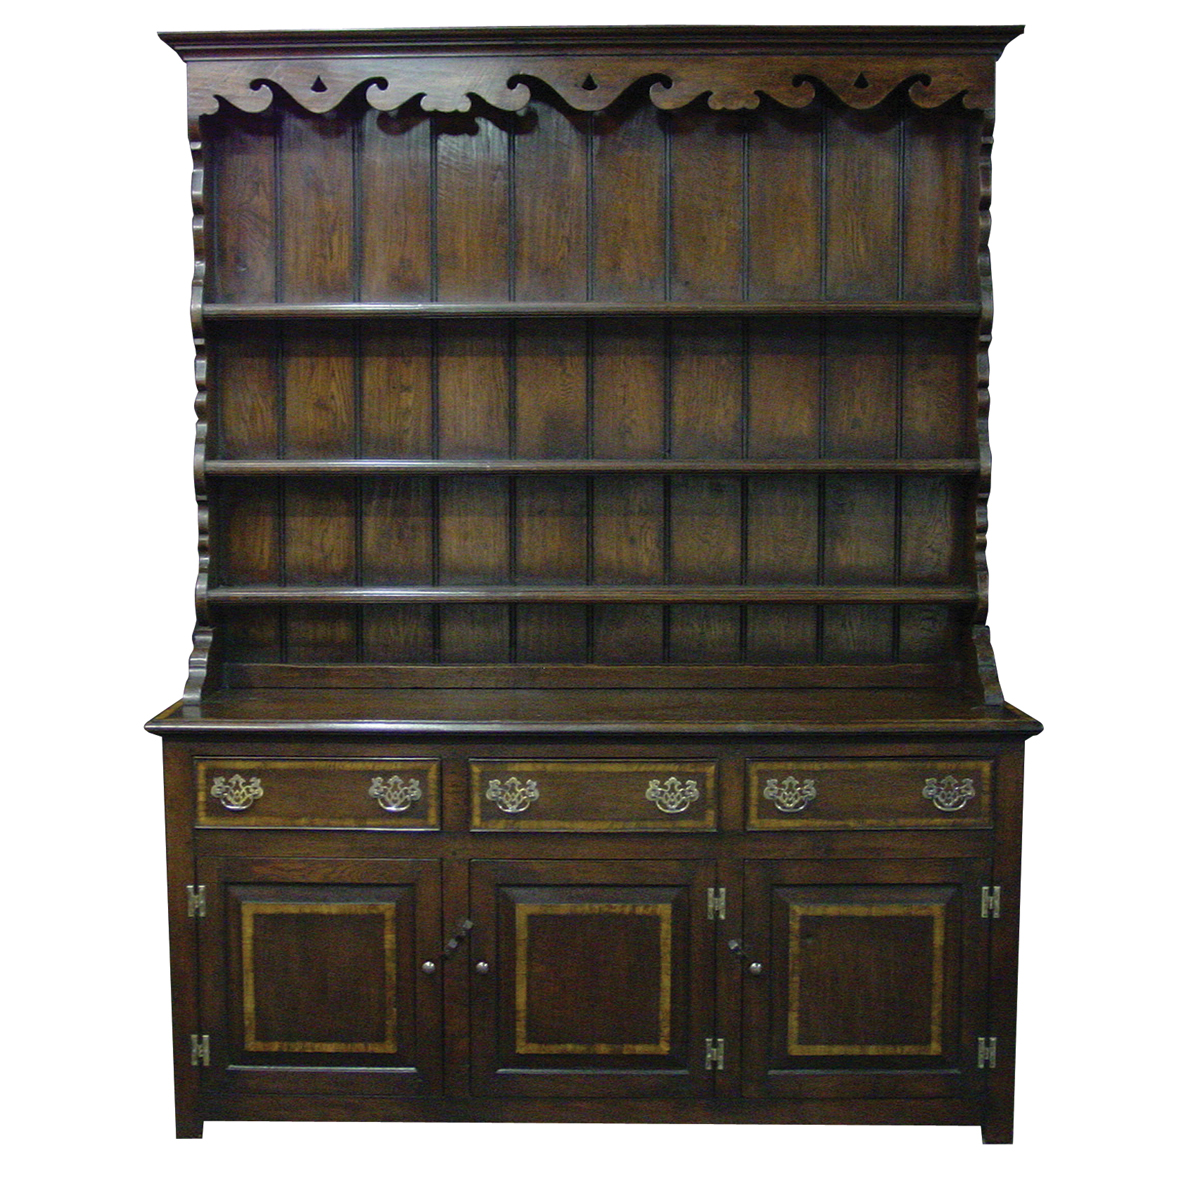 gentlemen wherein column s vertically large chest gentlemanchest paired configuration the guide drawers bedroom cupboards a with your is drawer dresser types and dressers of discover for cupboard